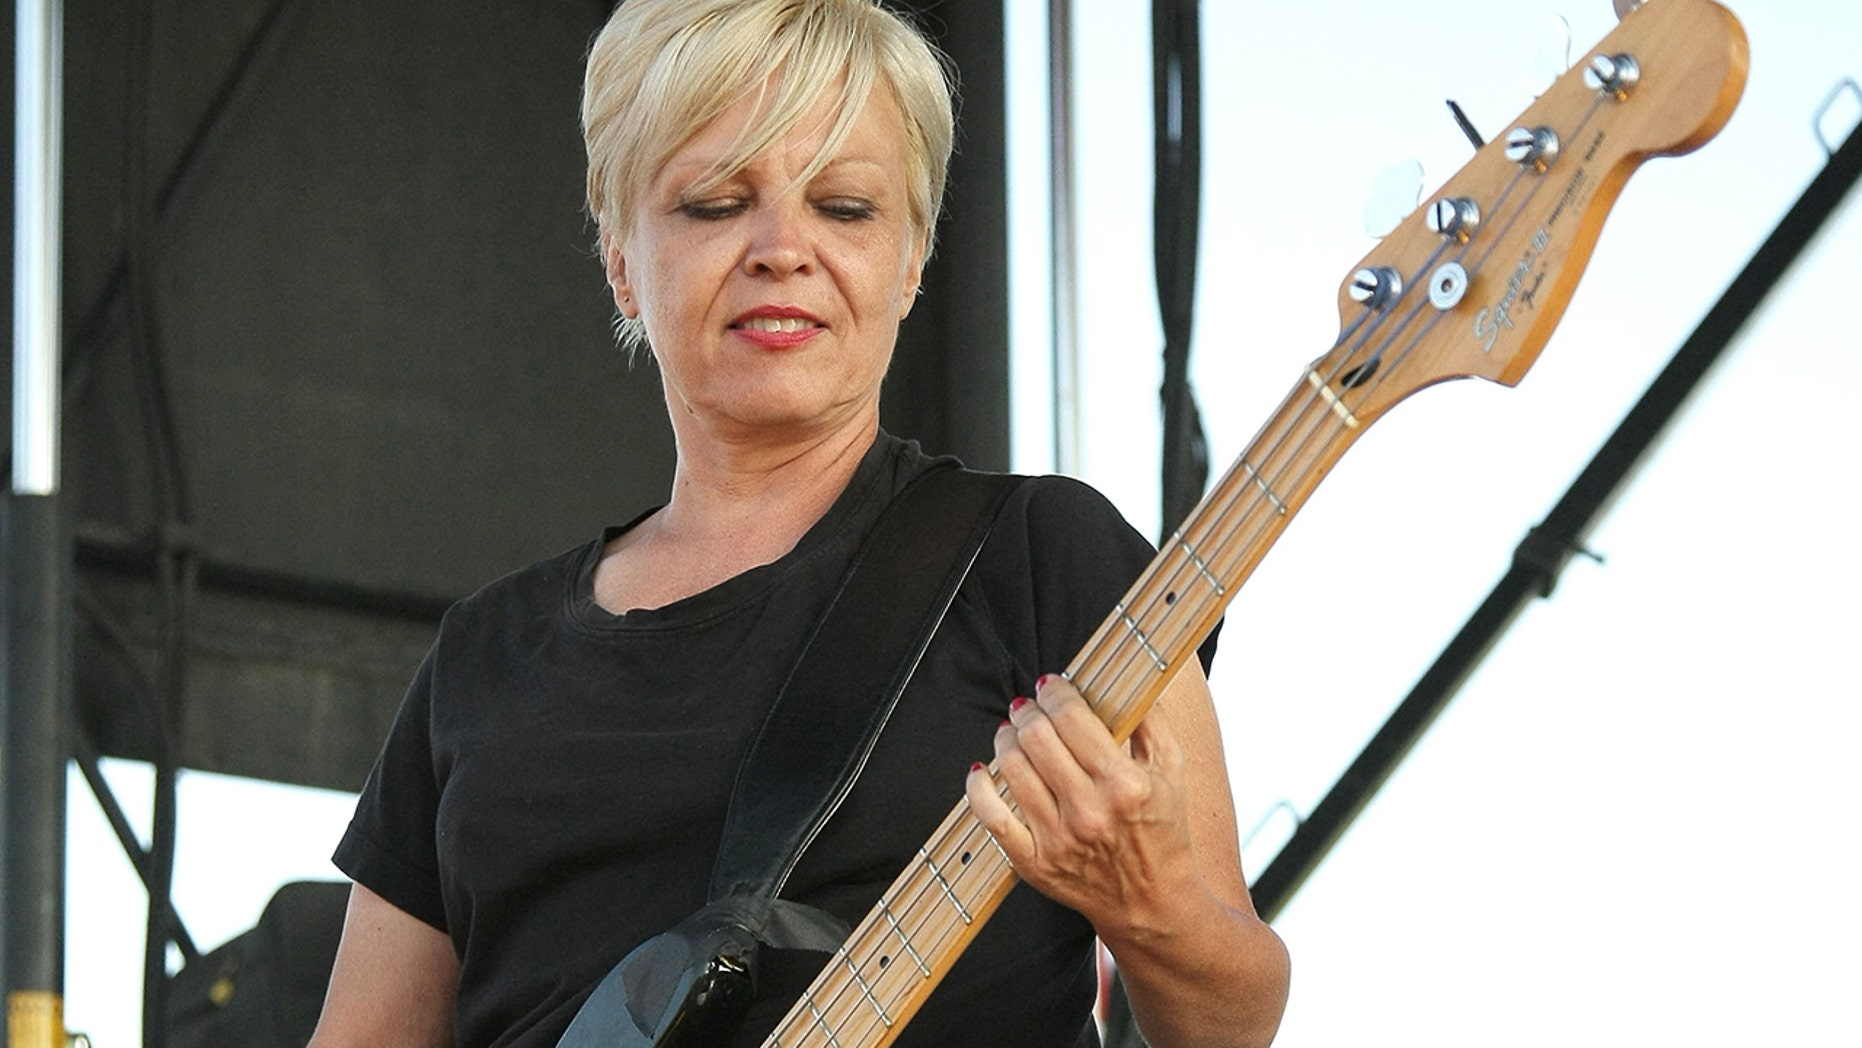 Lorna Doom, the bassist for the punk rock band The Germs, has died. She was 61.